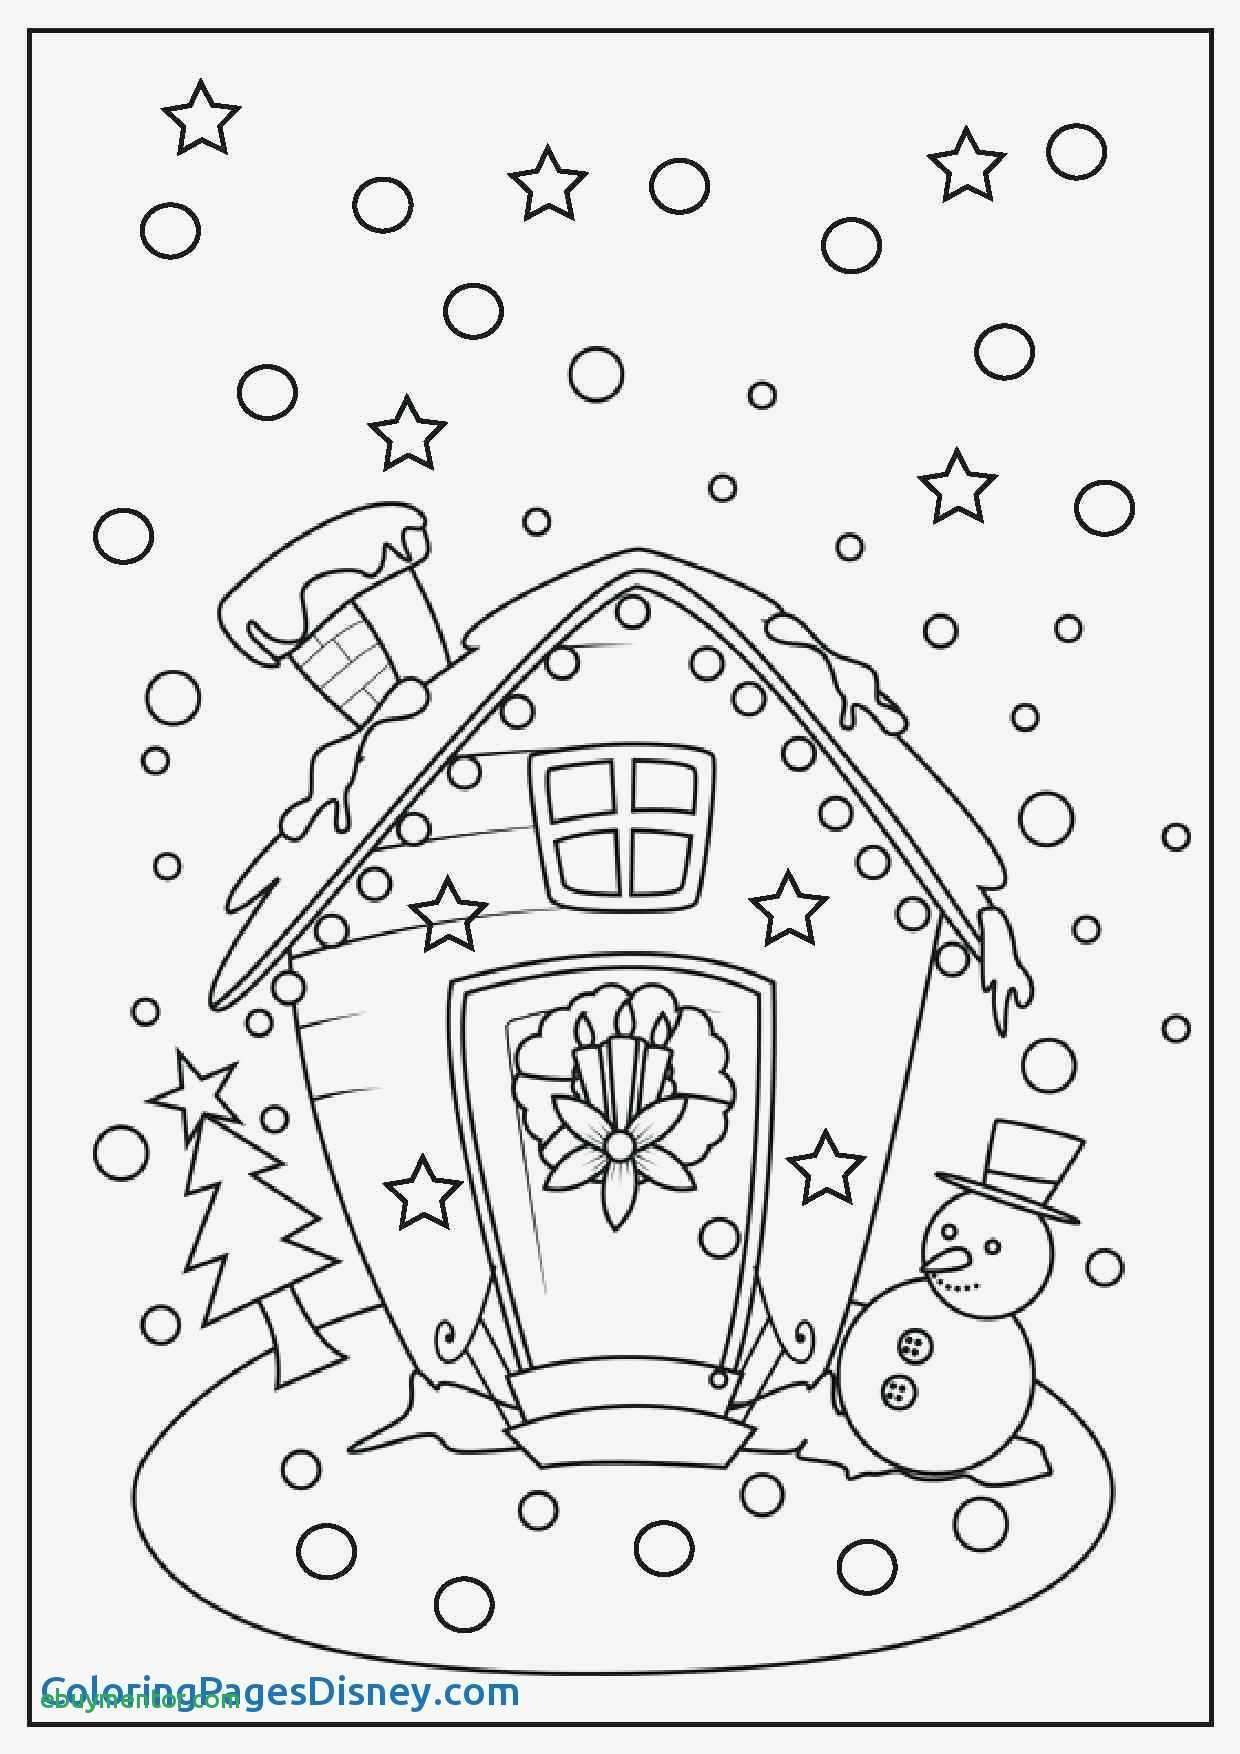 oriental trading christmas coloring pages Download-Christmas Coloring Pages Free N Fun Christmas Coloring Pages Free N Fun Cool Coloring Printables 0d 18-o